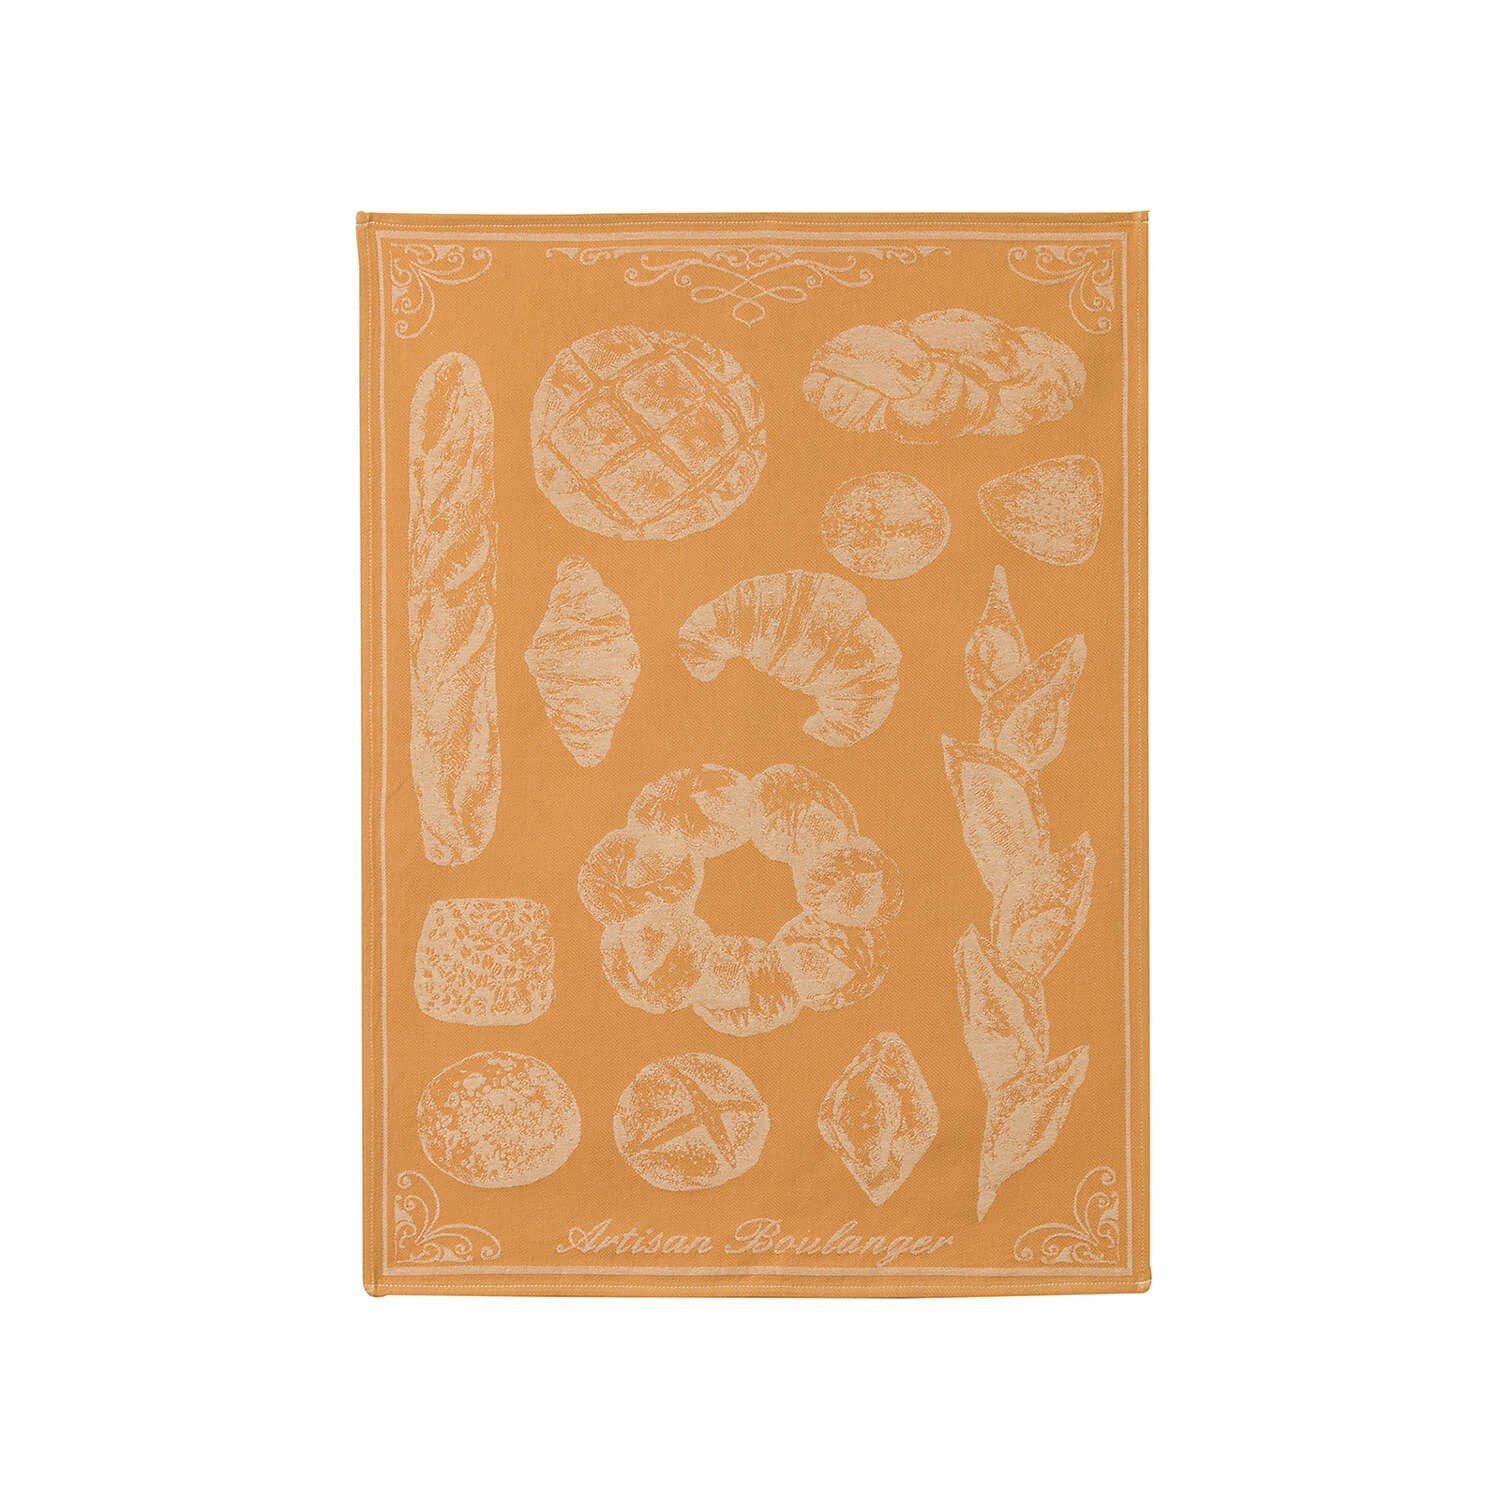 Coucke Artisan Bread tea towel